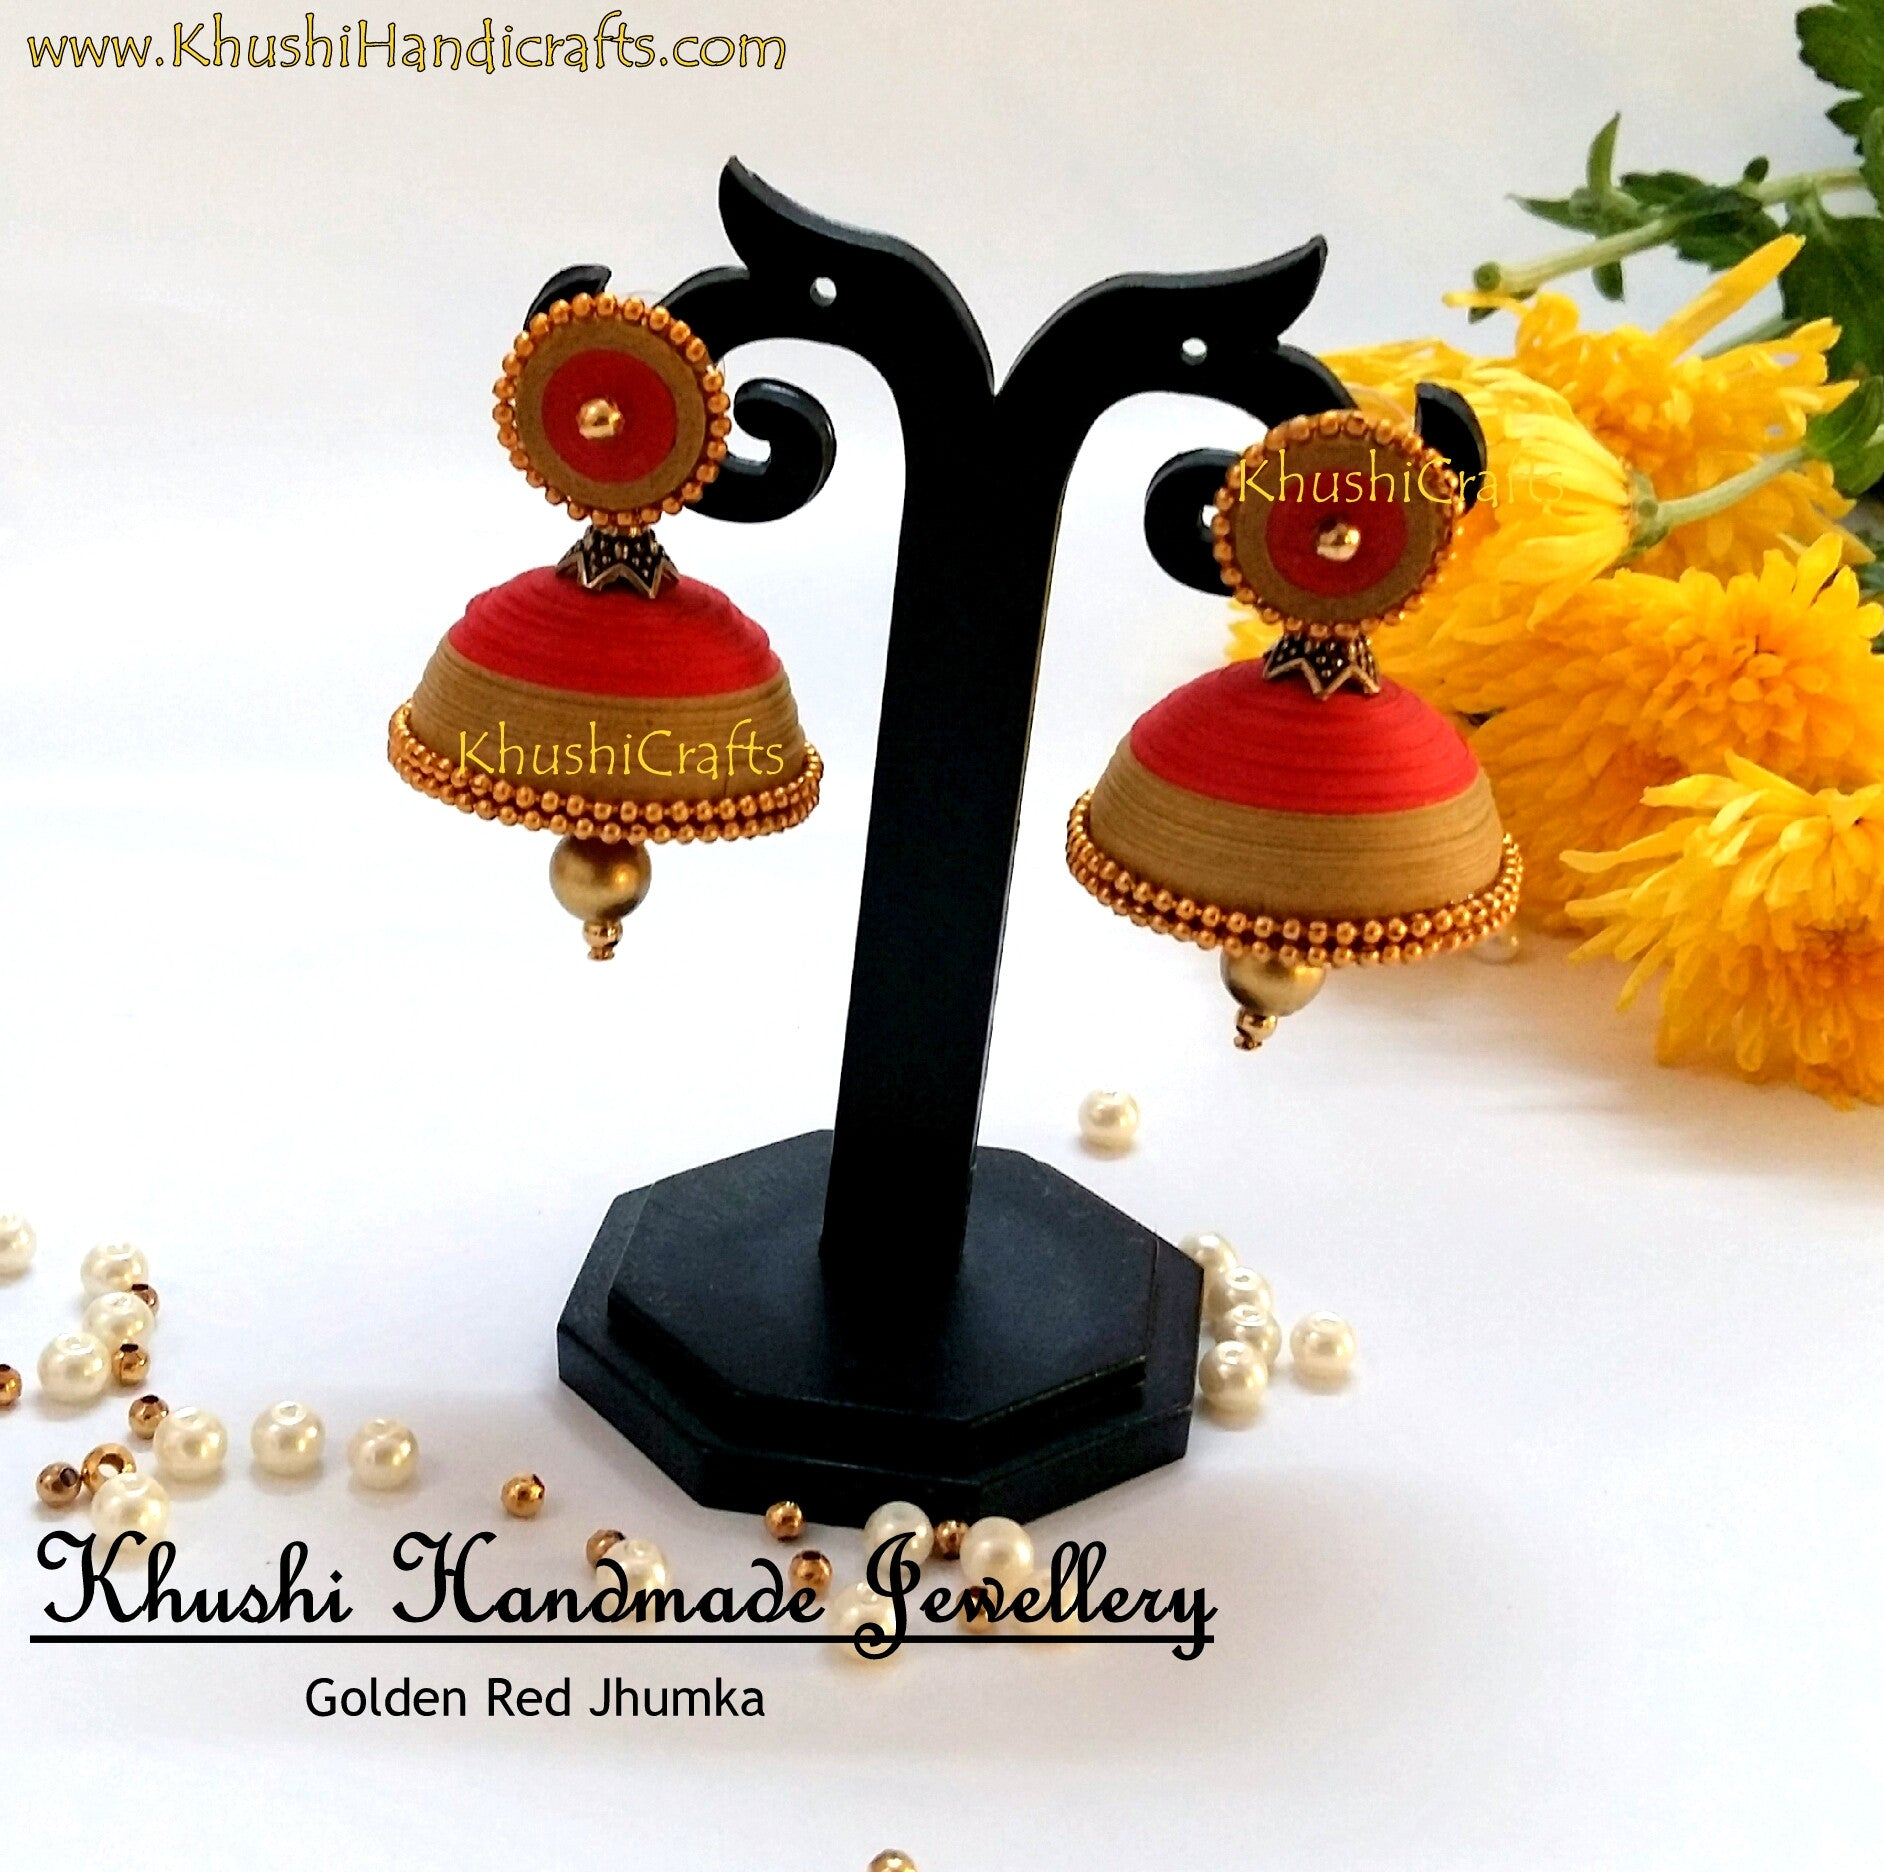 Golden Red Jhumka - Khushi Handmade Jewellery